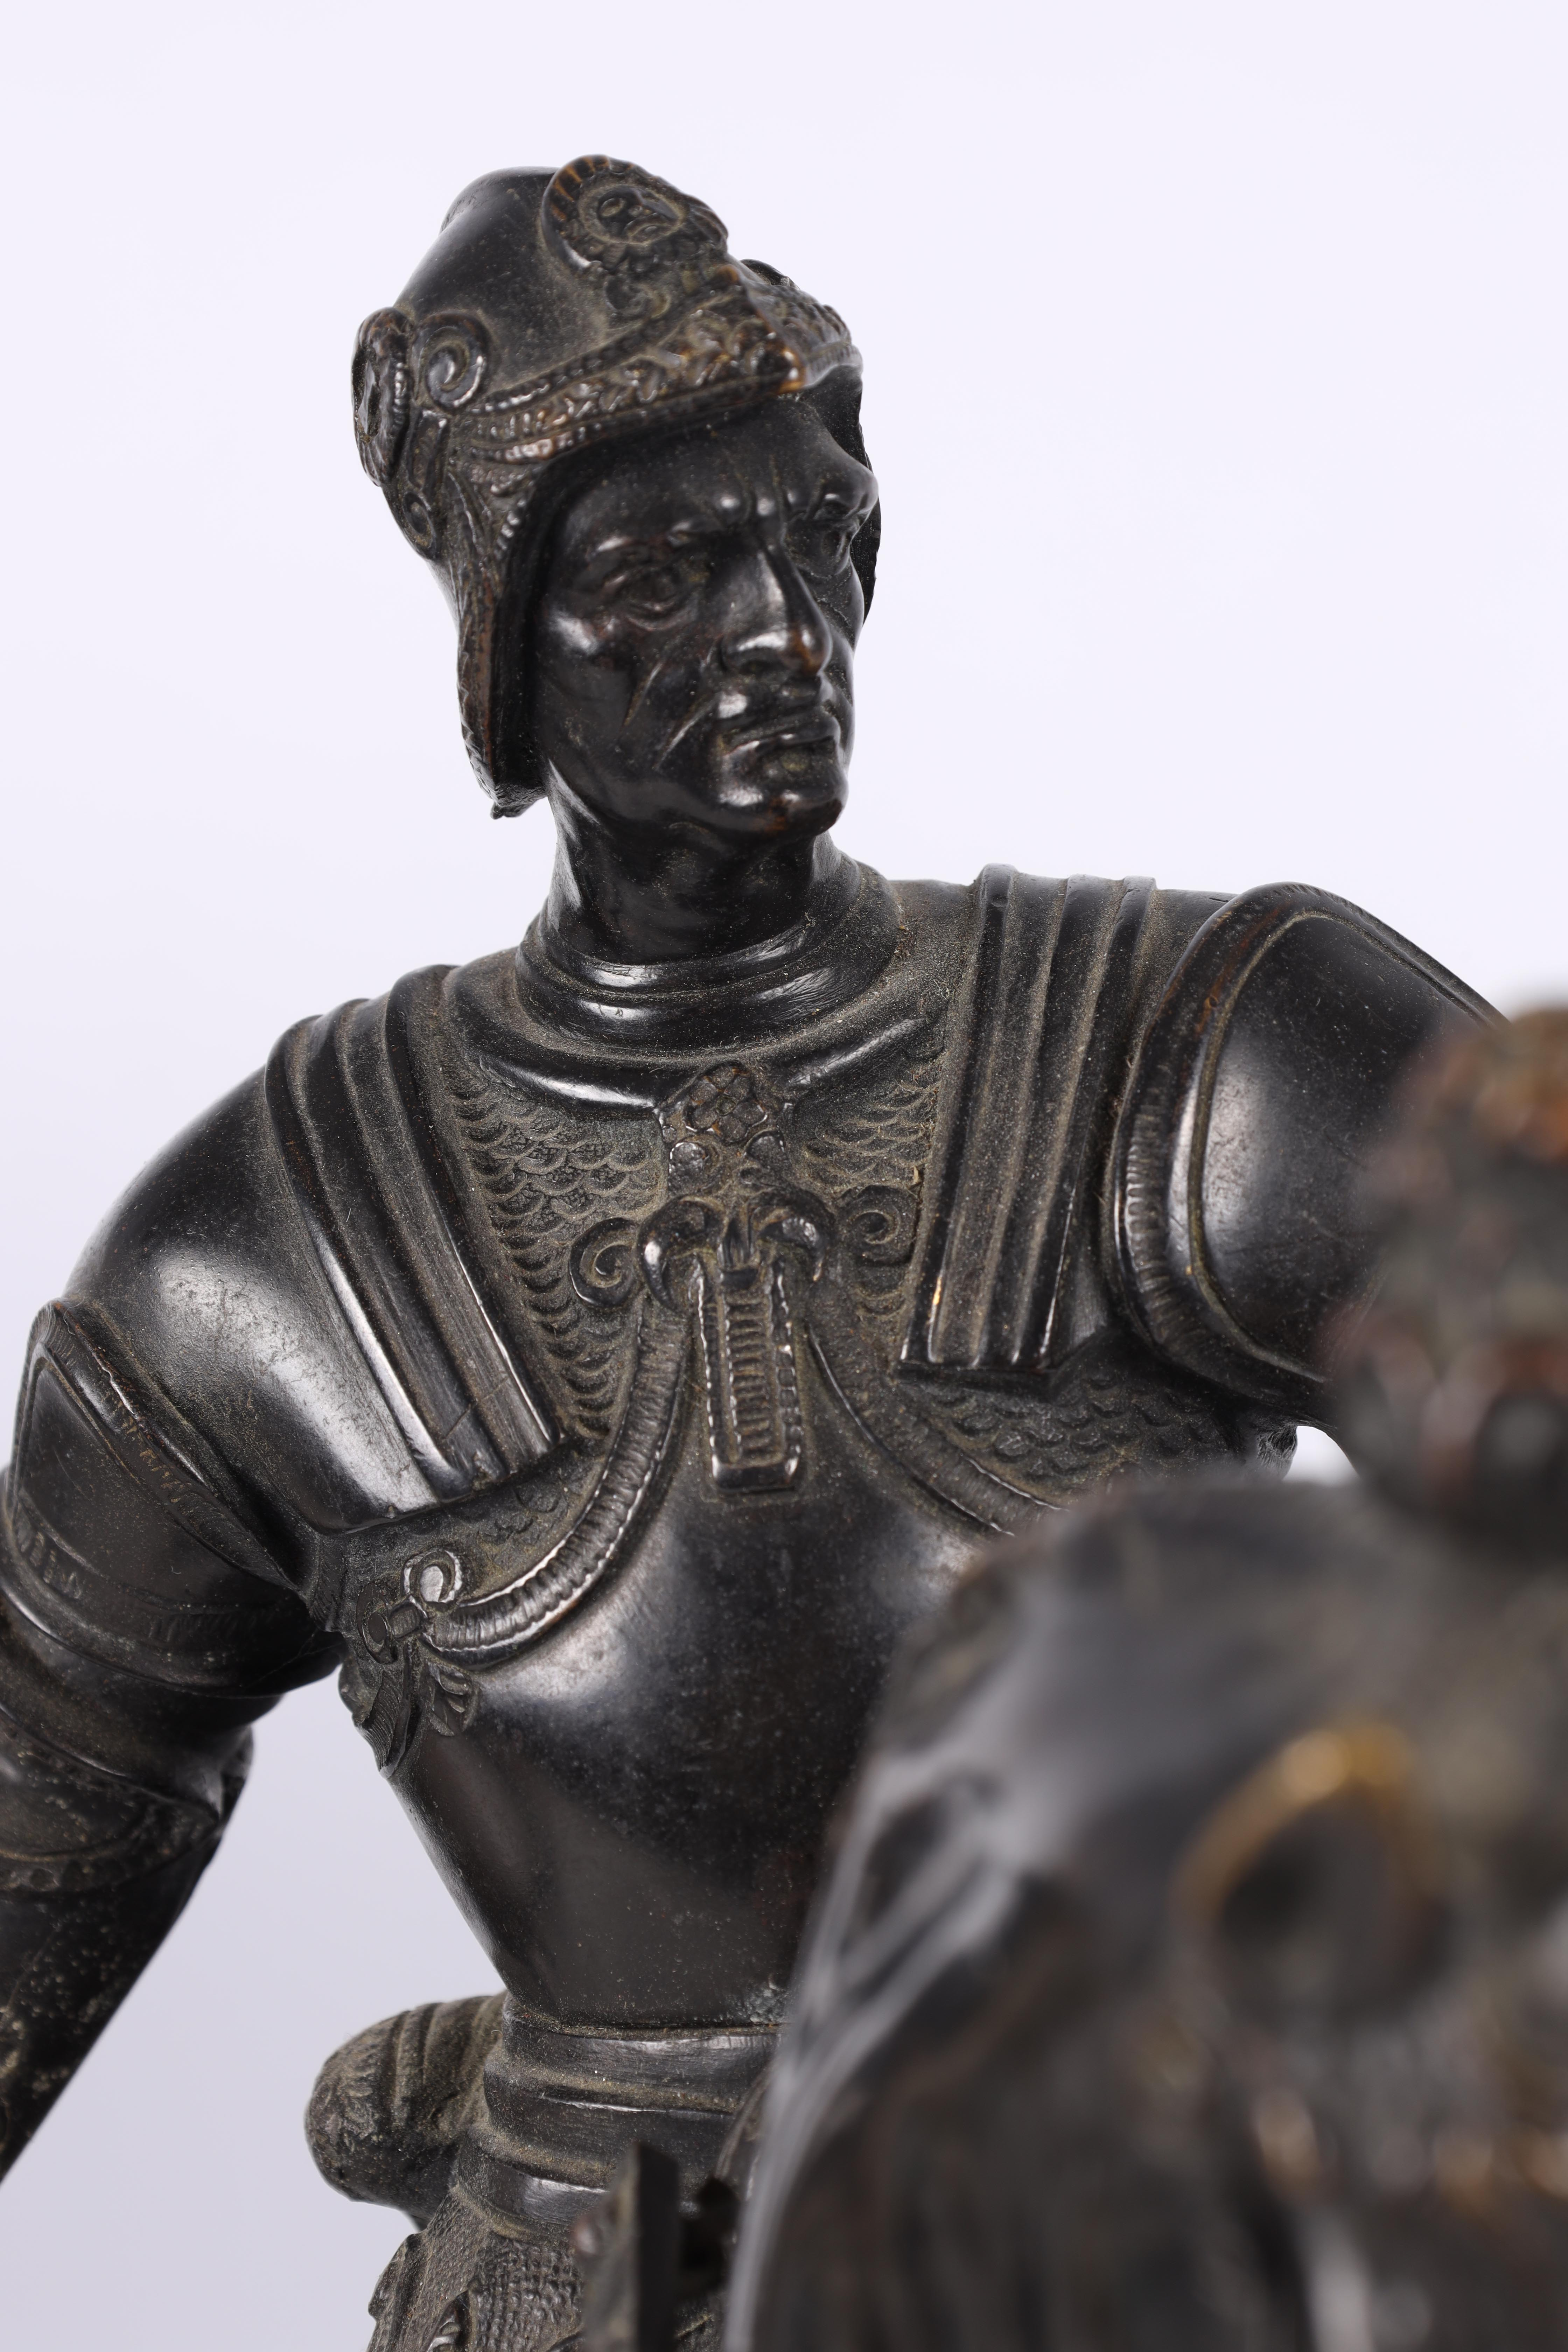 A LATE 19TH CENTURY PATINATED BRONZE EQUESTRIAN SCULPTURE modelled as a Knight on horseback of - Image 6 of 8